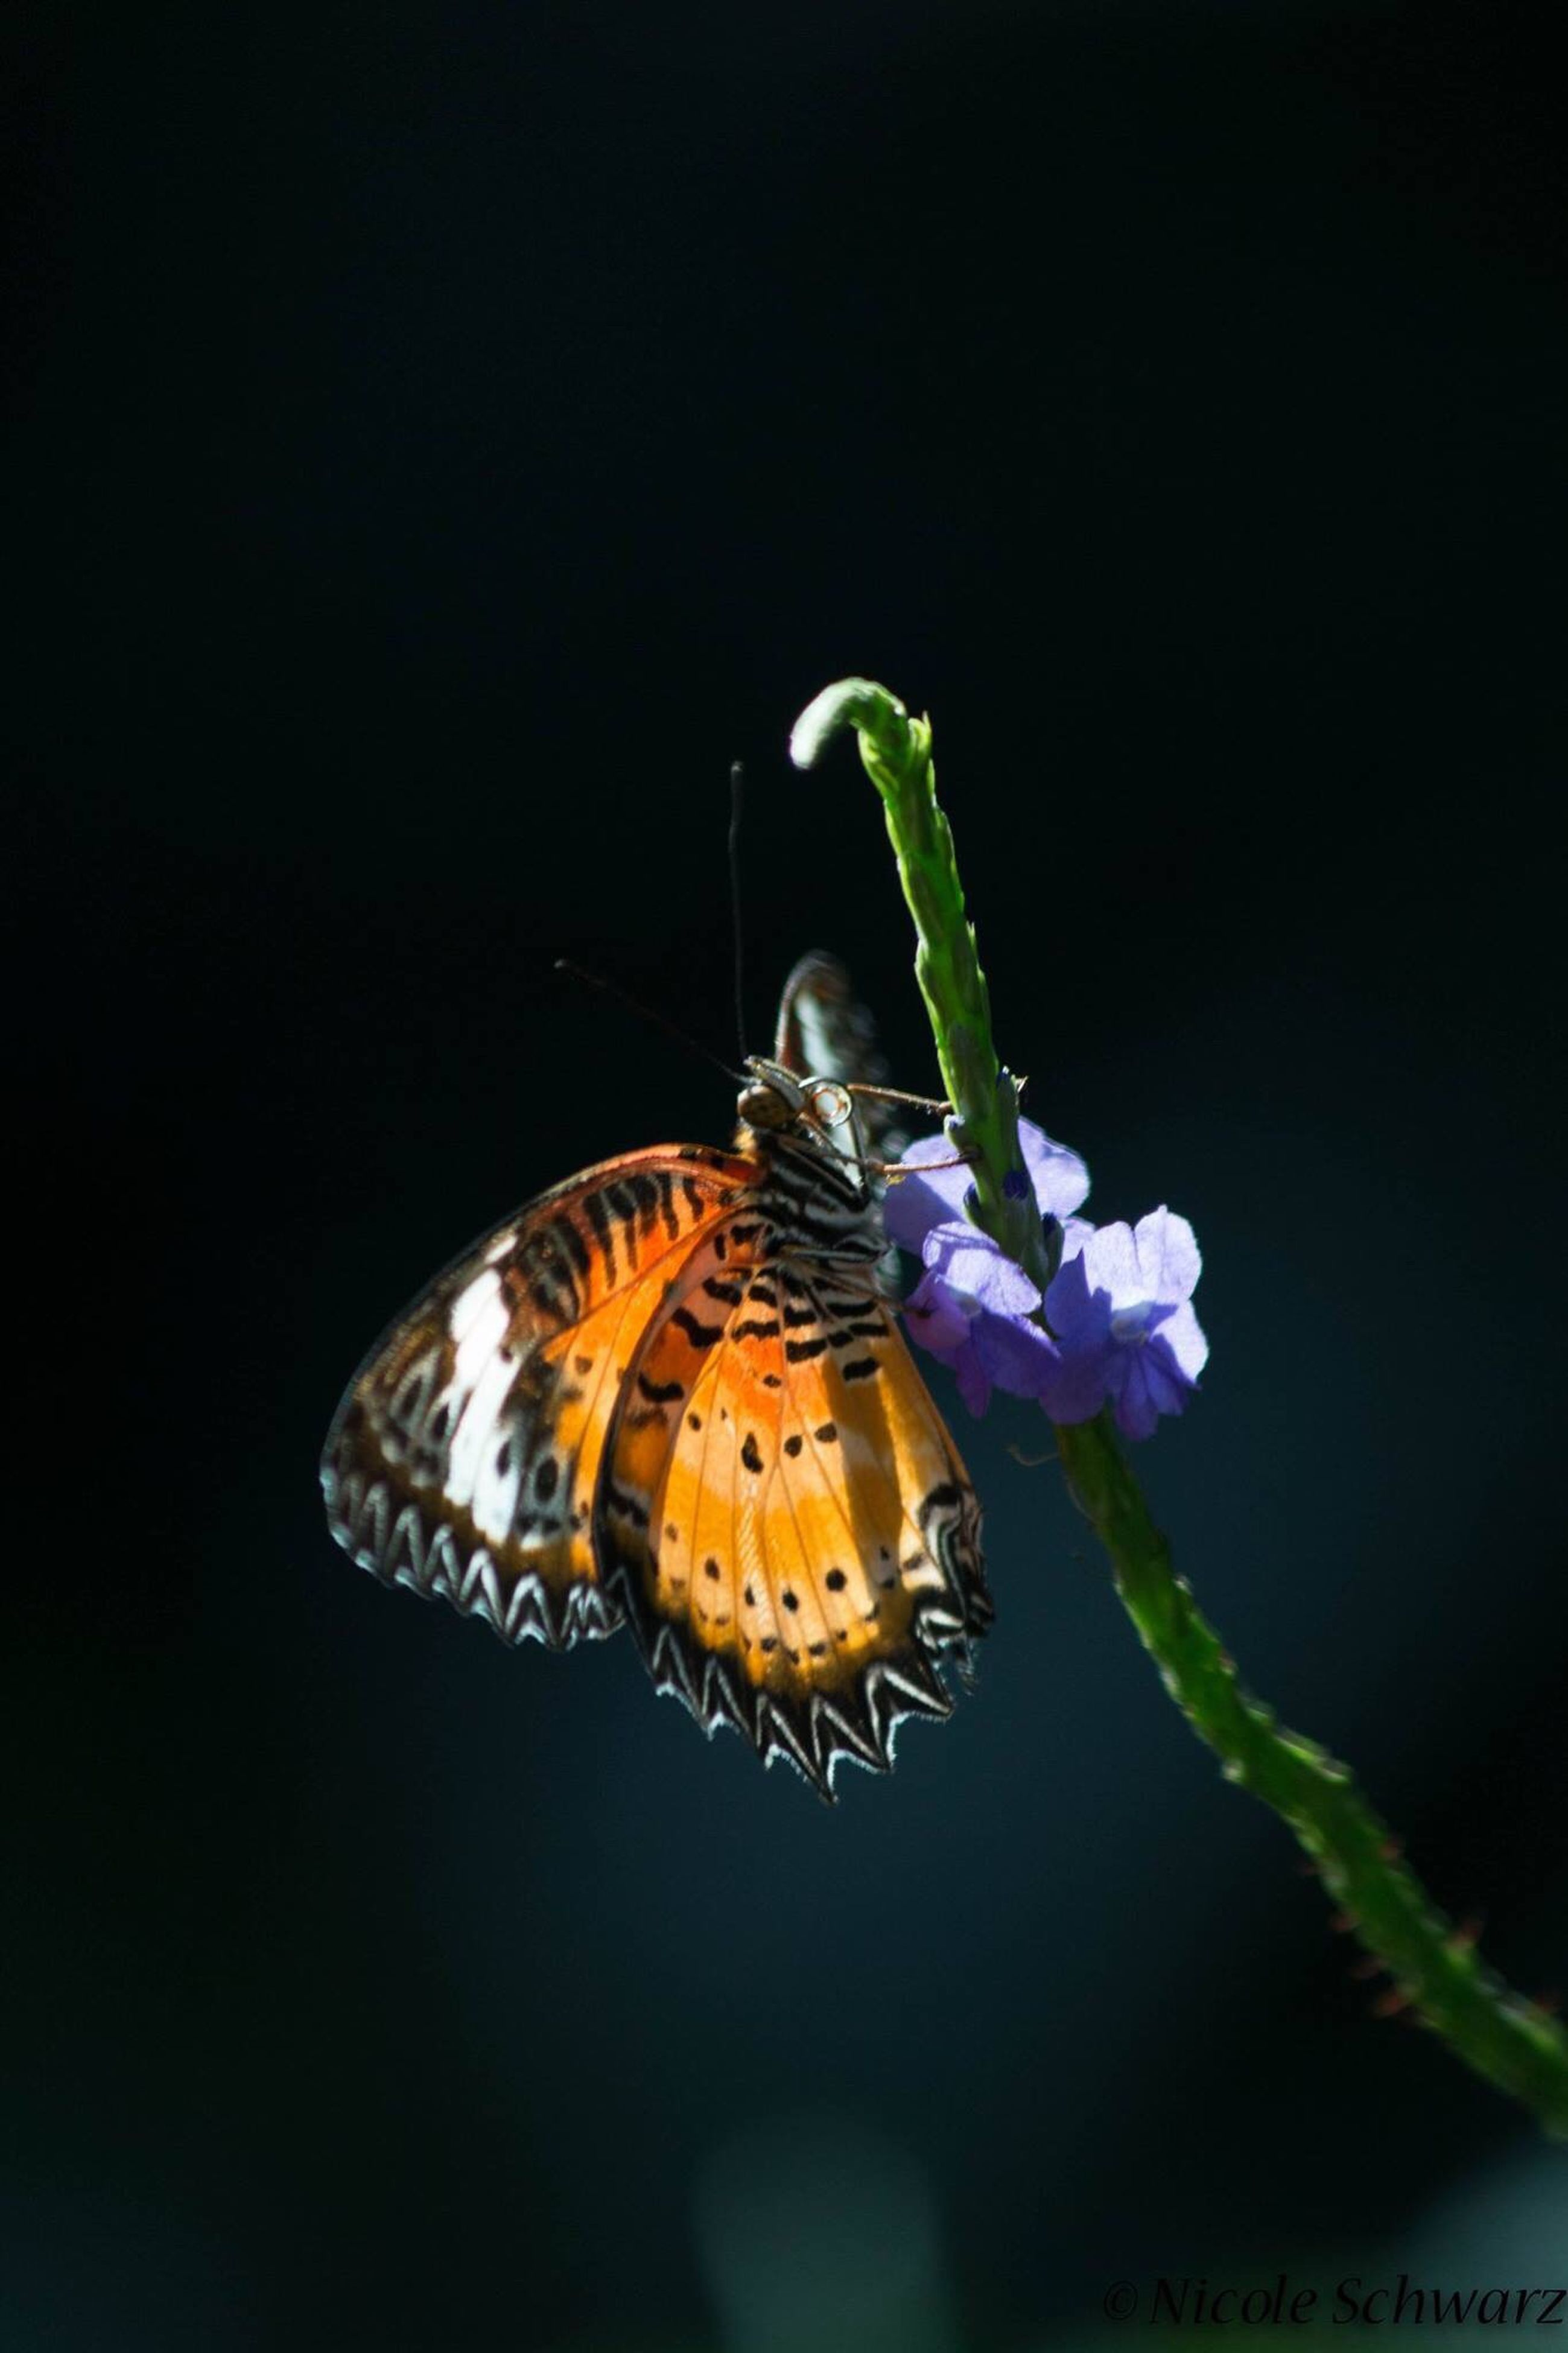 animal themes, one animal, insect, animals in the wild, wildlife, close-up, flower, butterfly, nature, fragility, butterfly - insect, beauty in nature, plant, focus on foreground, purple, growth, freshness, pollination, zoology, animal wing, animal markings, no people